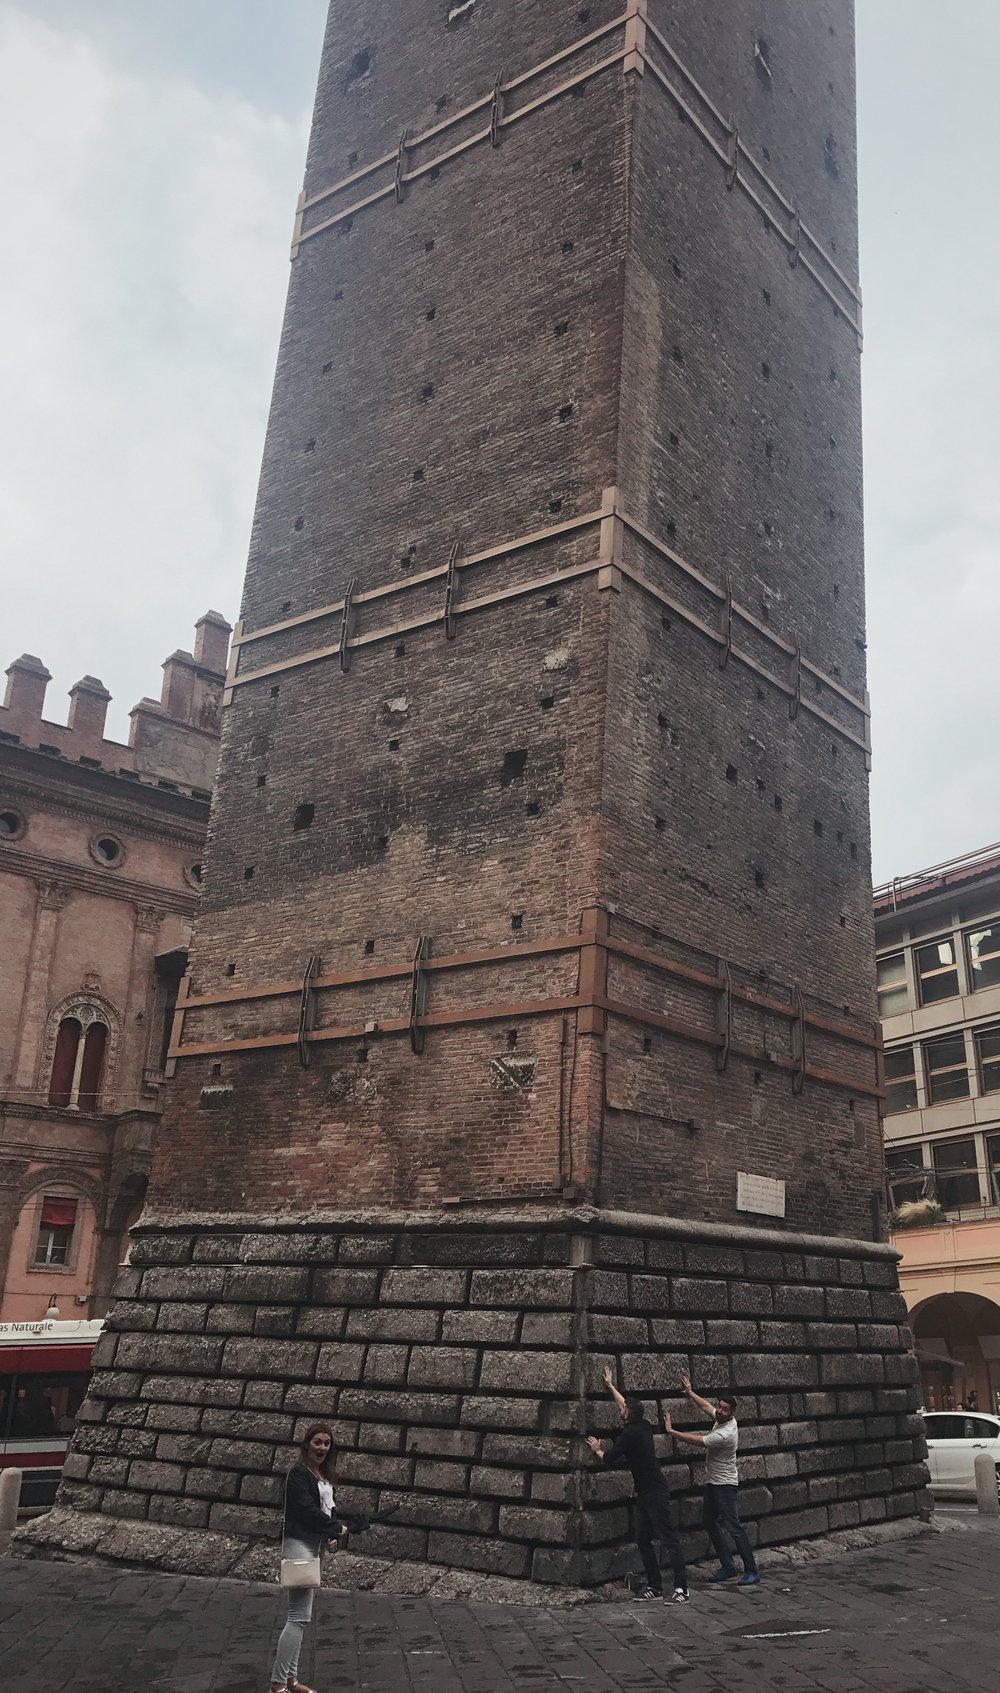 Bologna's answer to the leaning tower - The Two Towers